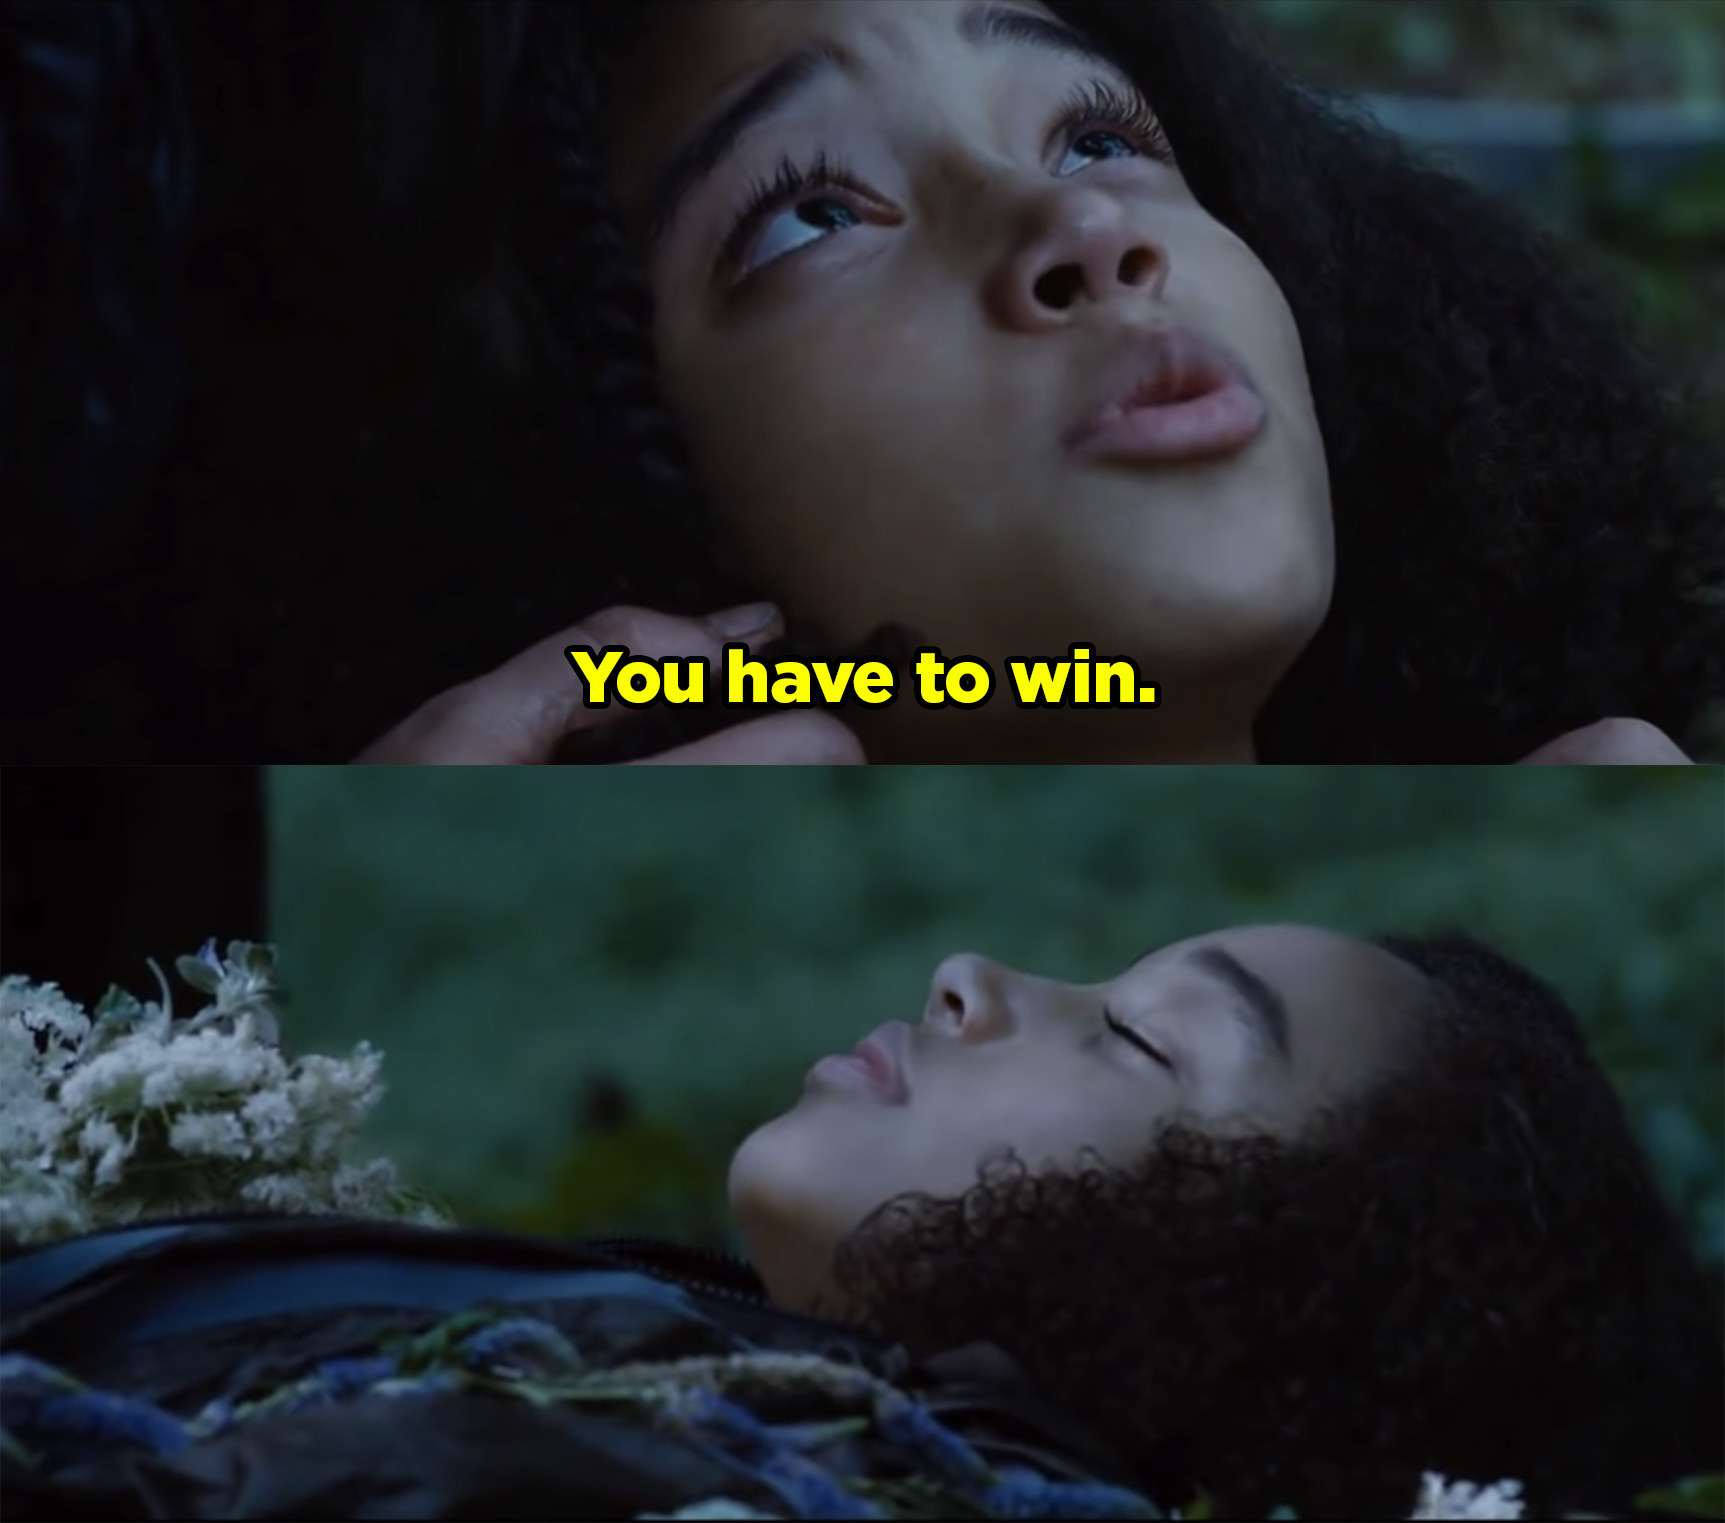 Rue telling Katniss she has to win The Hunger Games before dying.